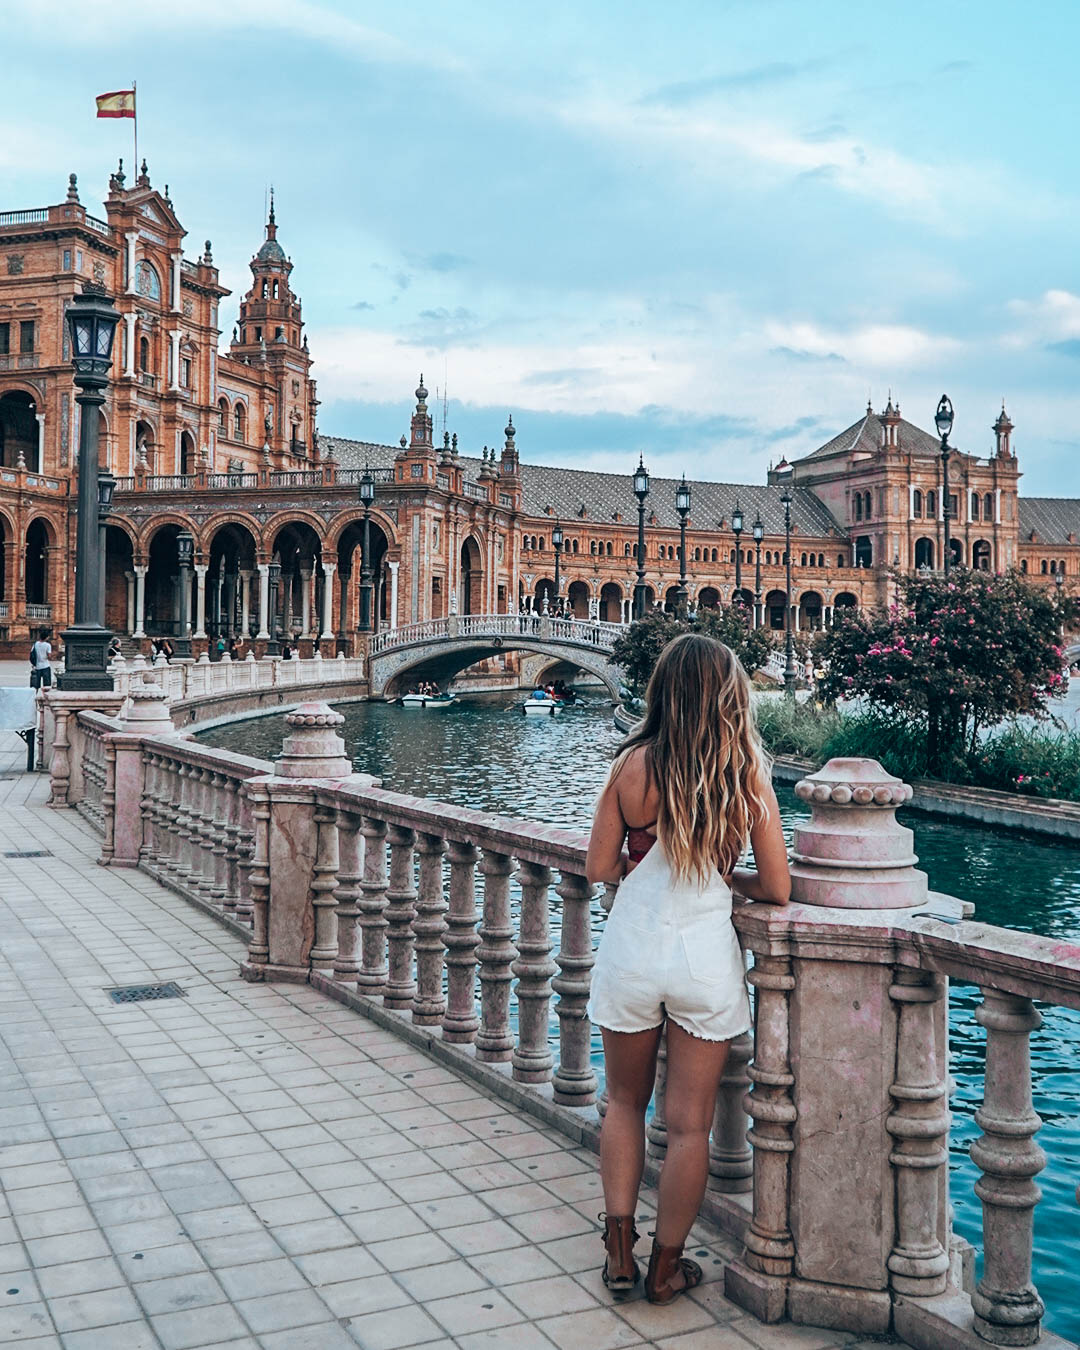 Plaza De Espana, Seville, Spain. Discover Seville points of interest, where to eat in Seville, where to stay in Seville, and useful Seville travel tips from this complete Seville travel guide. #seville #sevilleguide #sevilletravelguide #sevilleeurope #sevilletips #sevillefood #sevilletapas